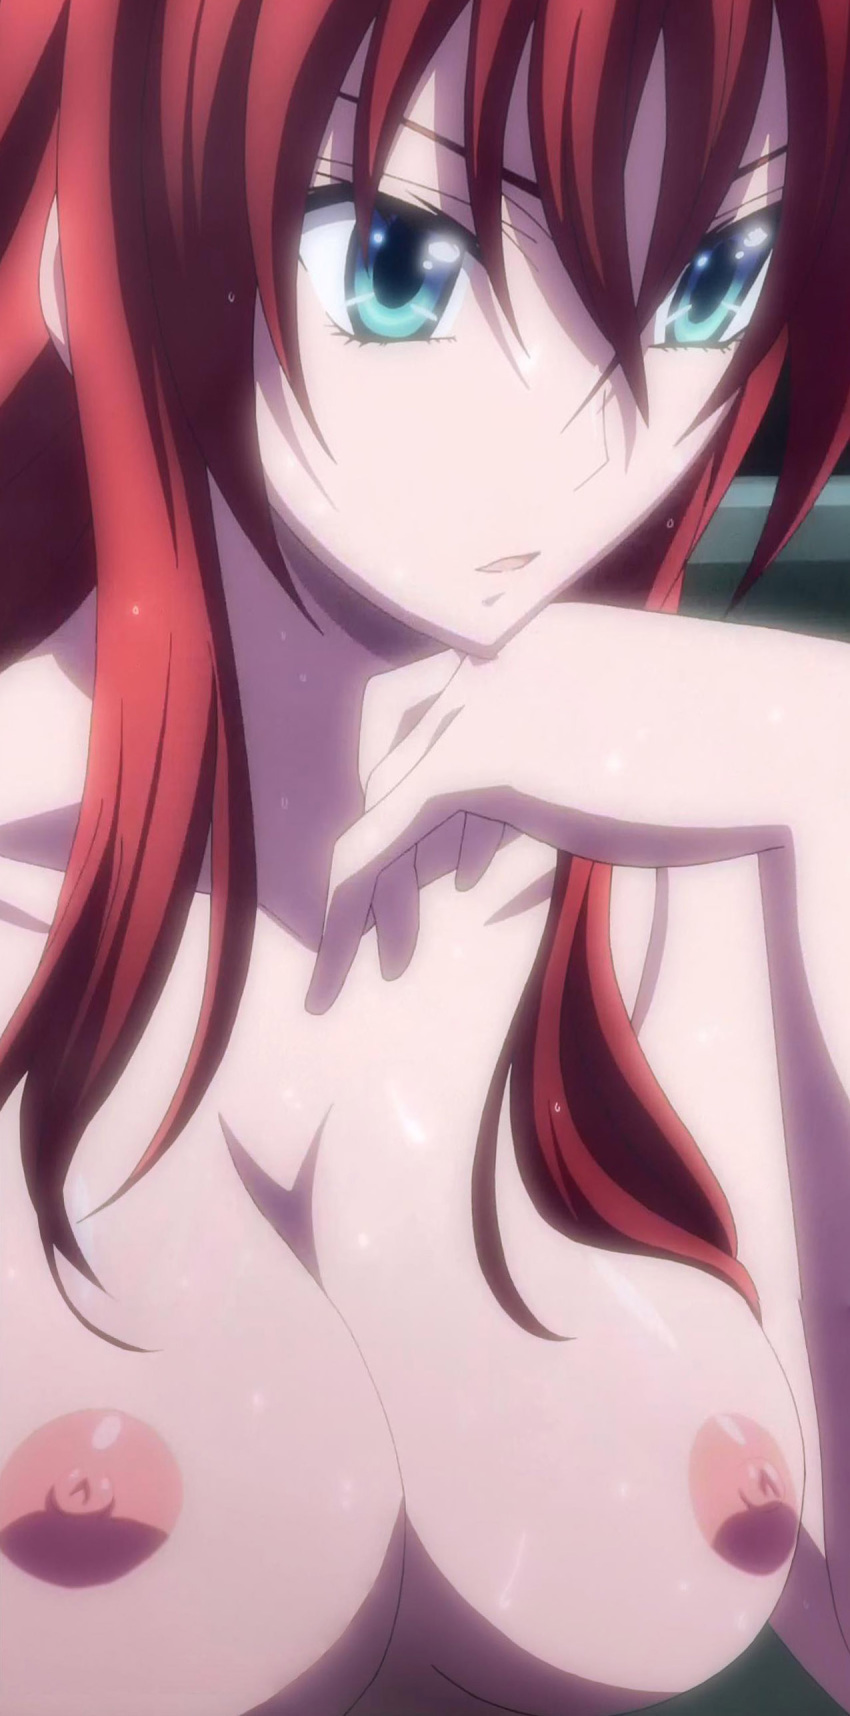 gremory rias highschool nude dxd Poe a trials in tainted space